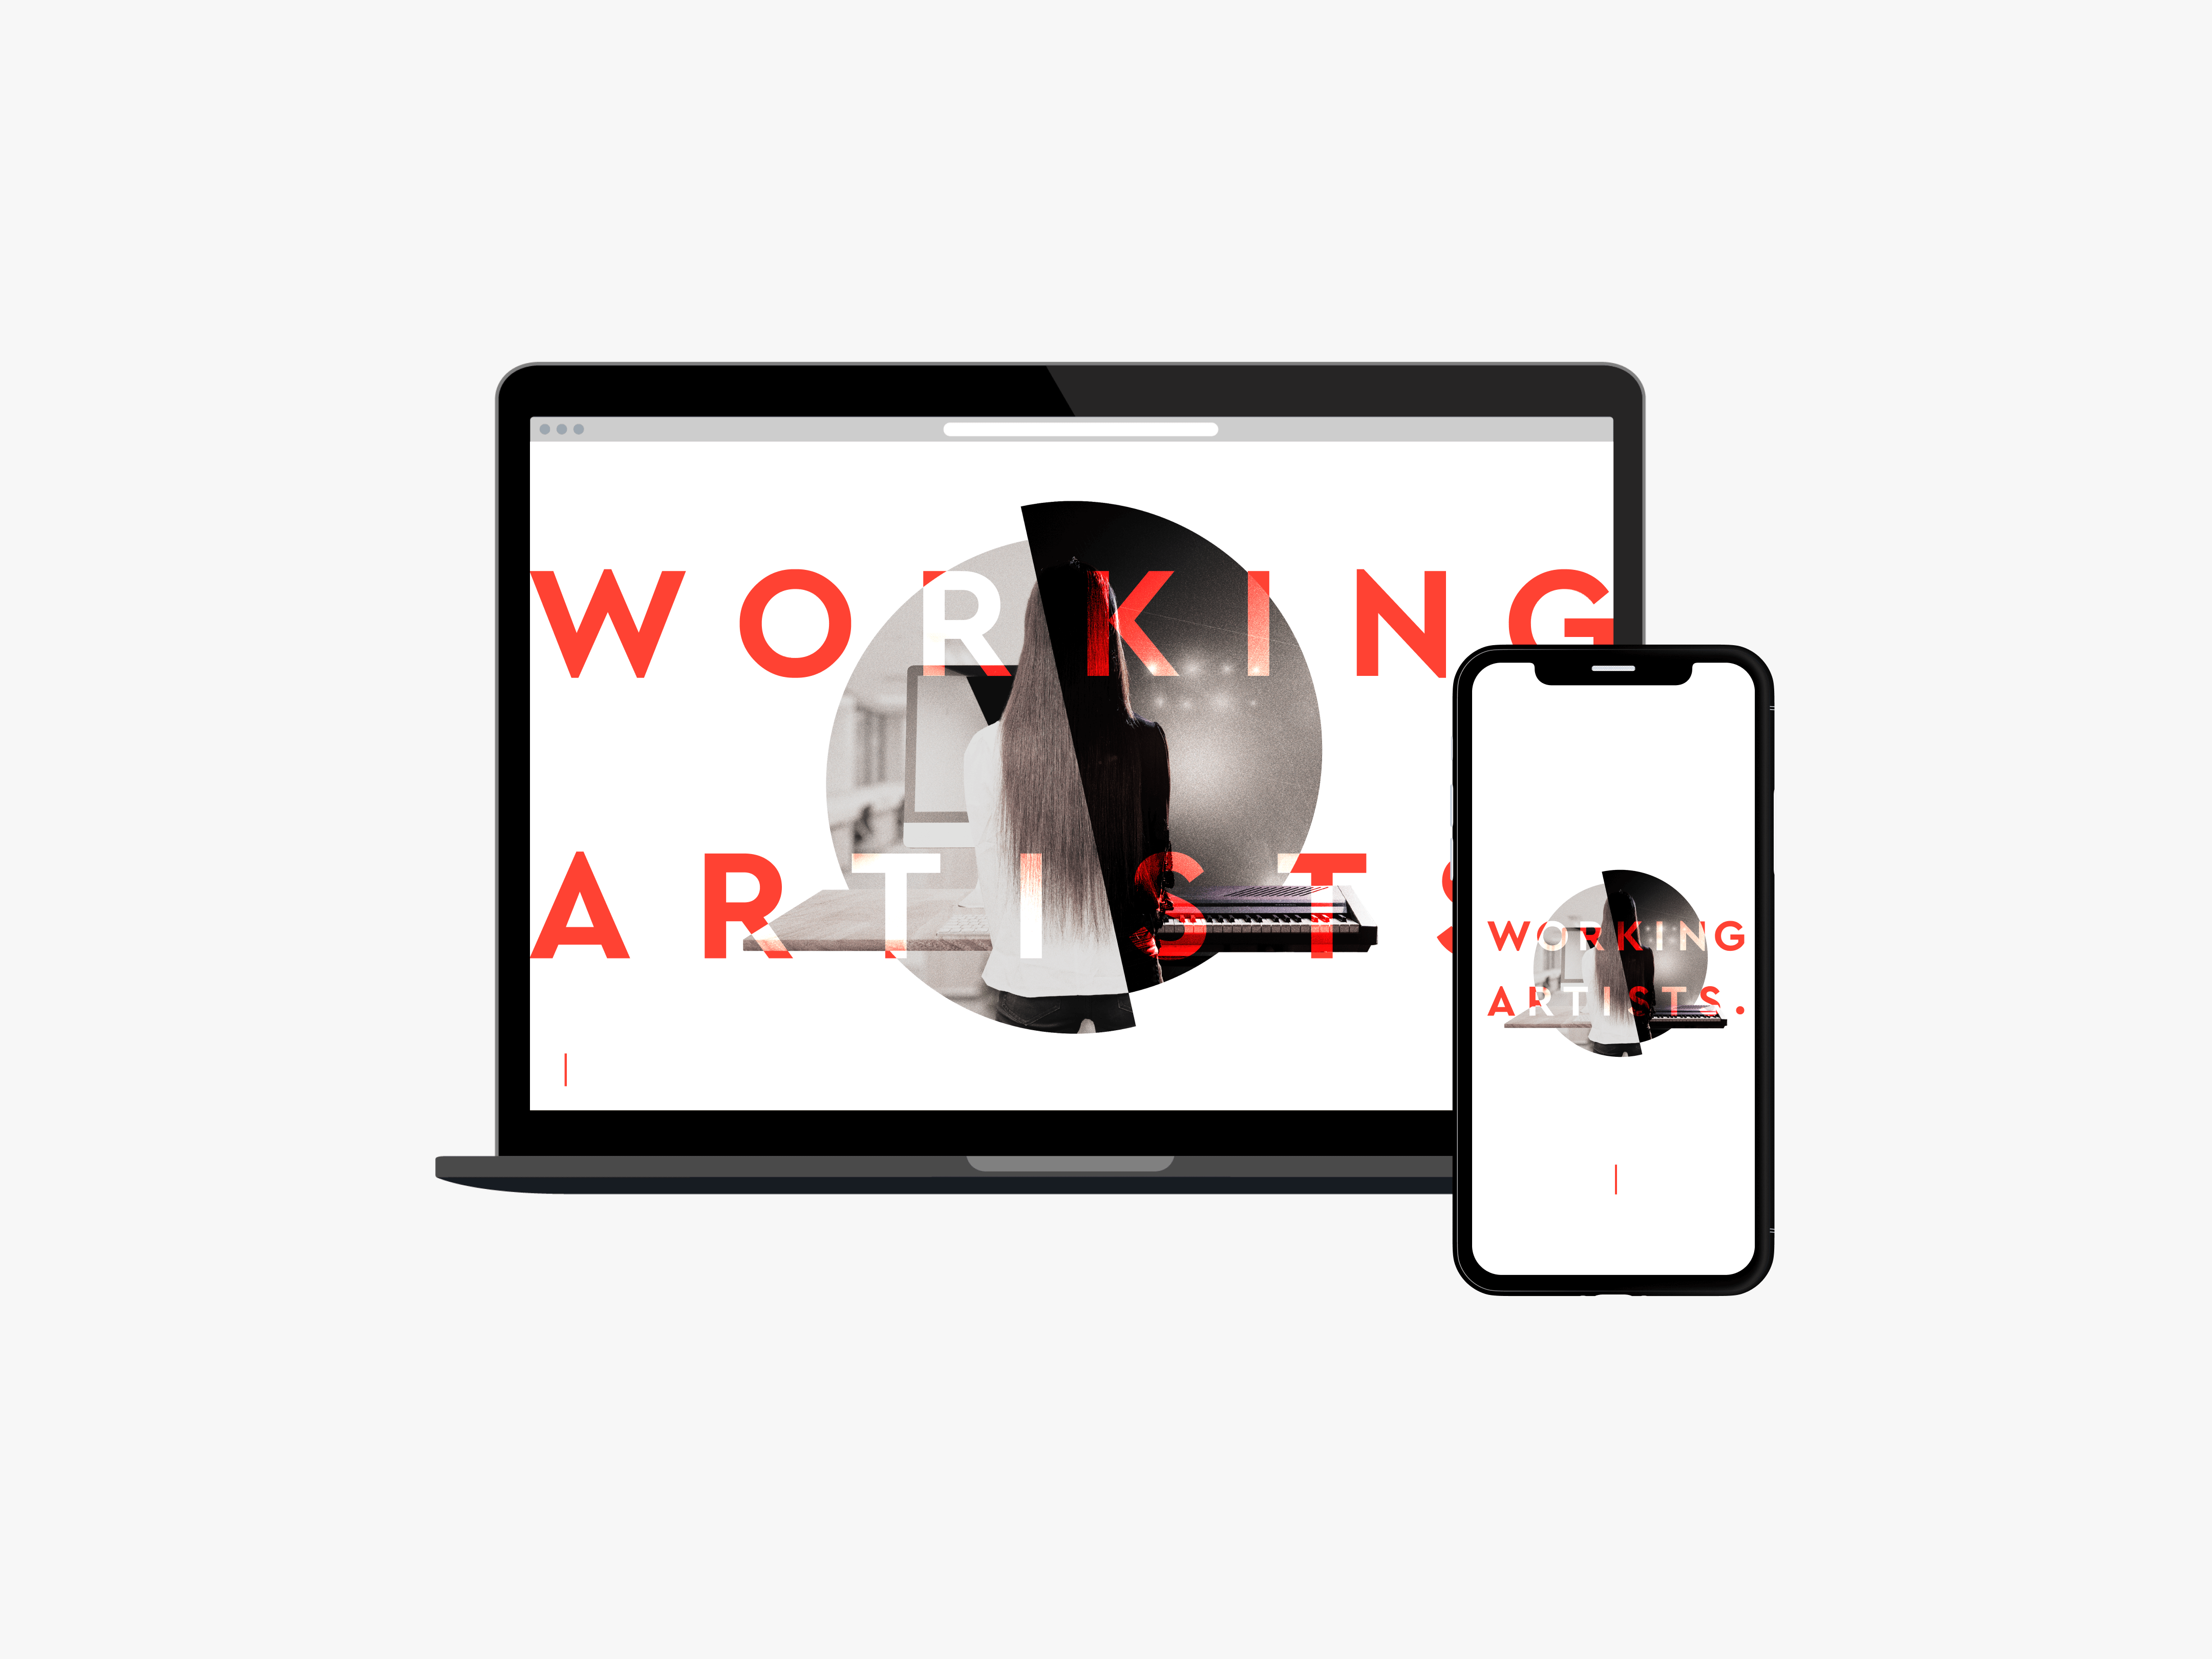 WORKING ARTISTS. Service Brandingのサンプル画像です